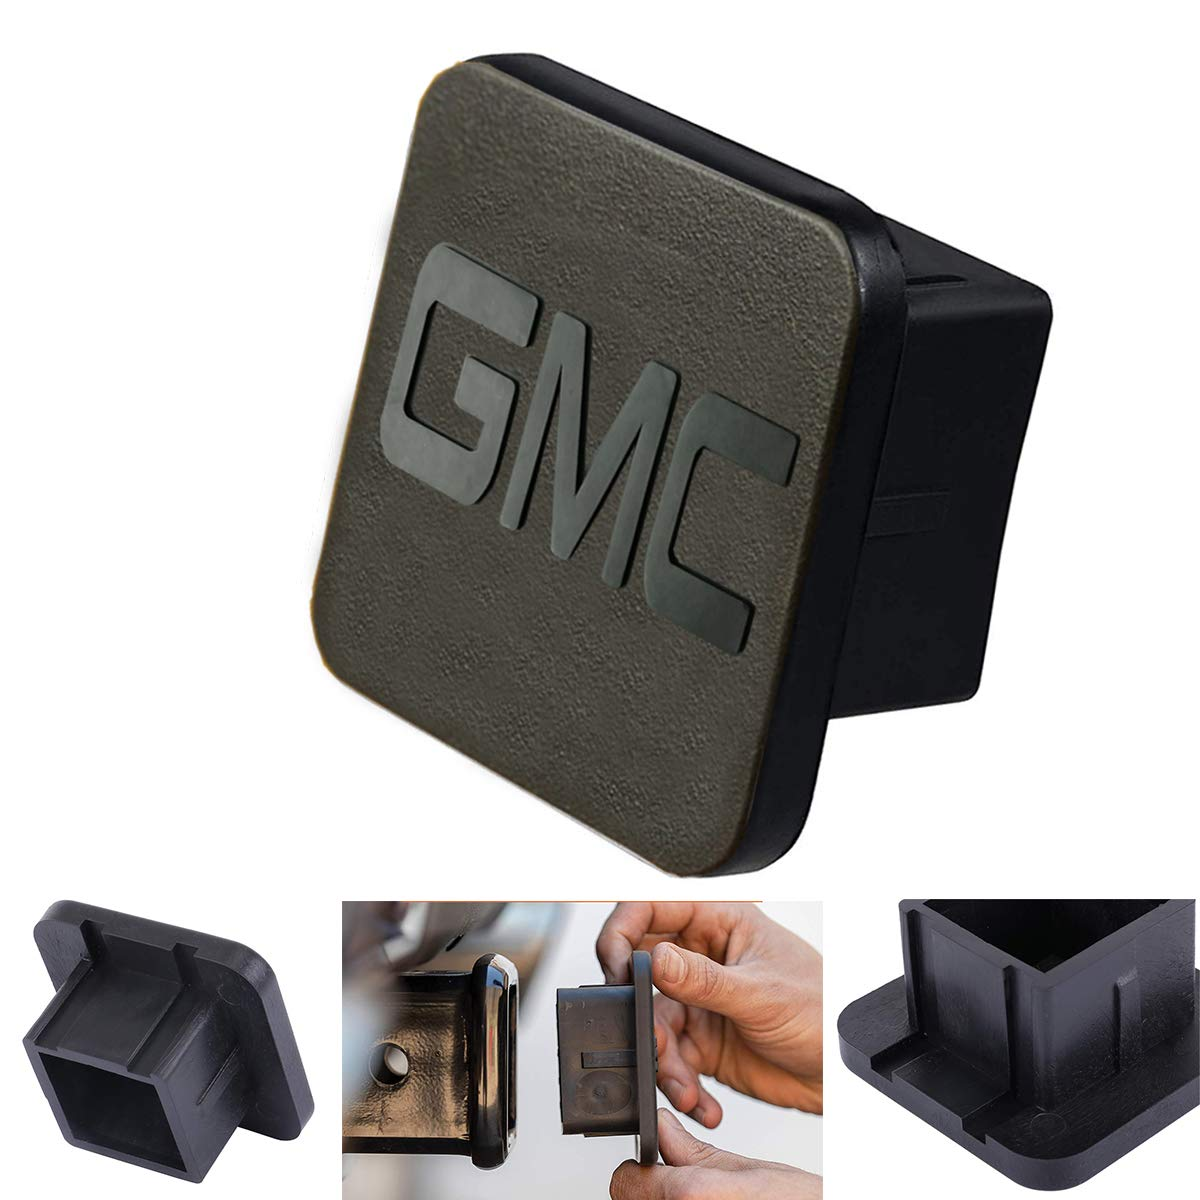 GMC Logo Rubber Receiver Tube Hitch Plug,Trailer Hitch Tube Cover Plug Cap for GMC,GMC Trailer Hitch Cover by Goodcover